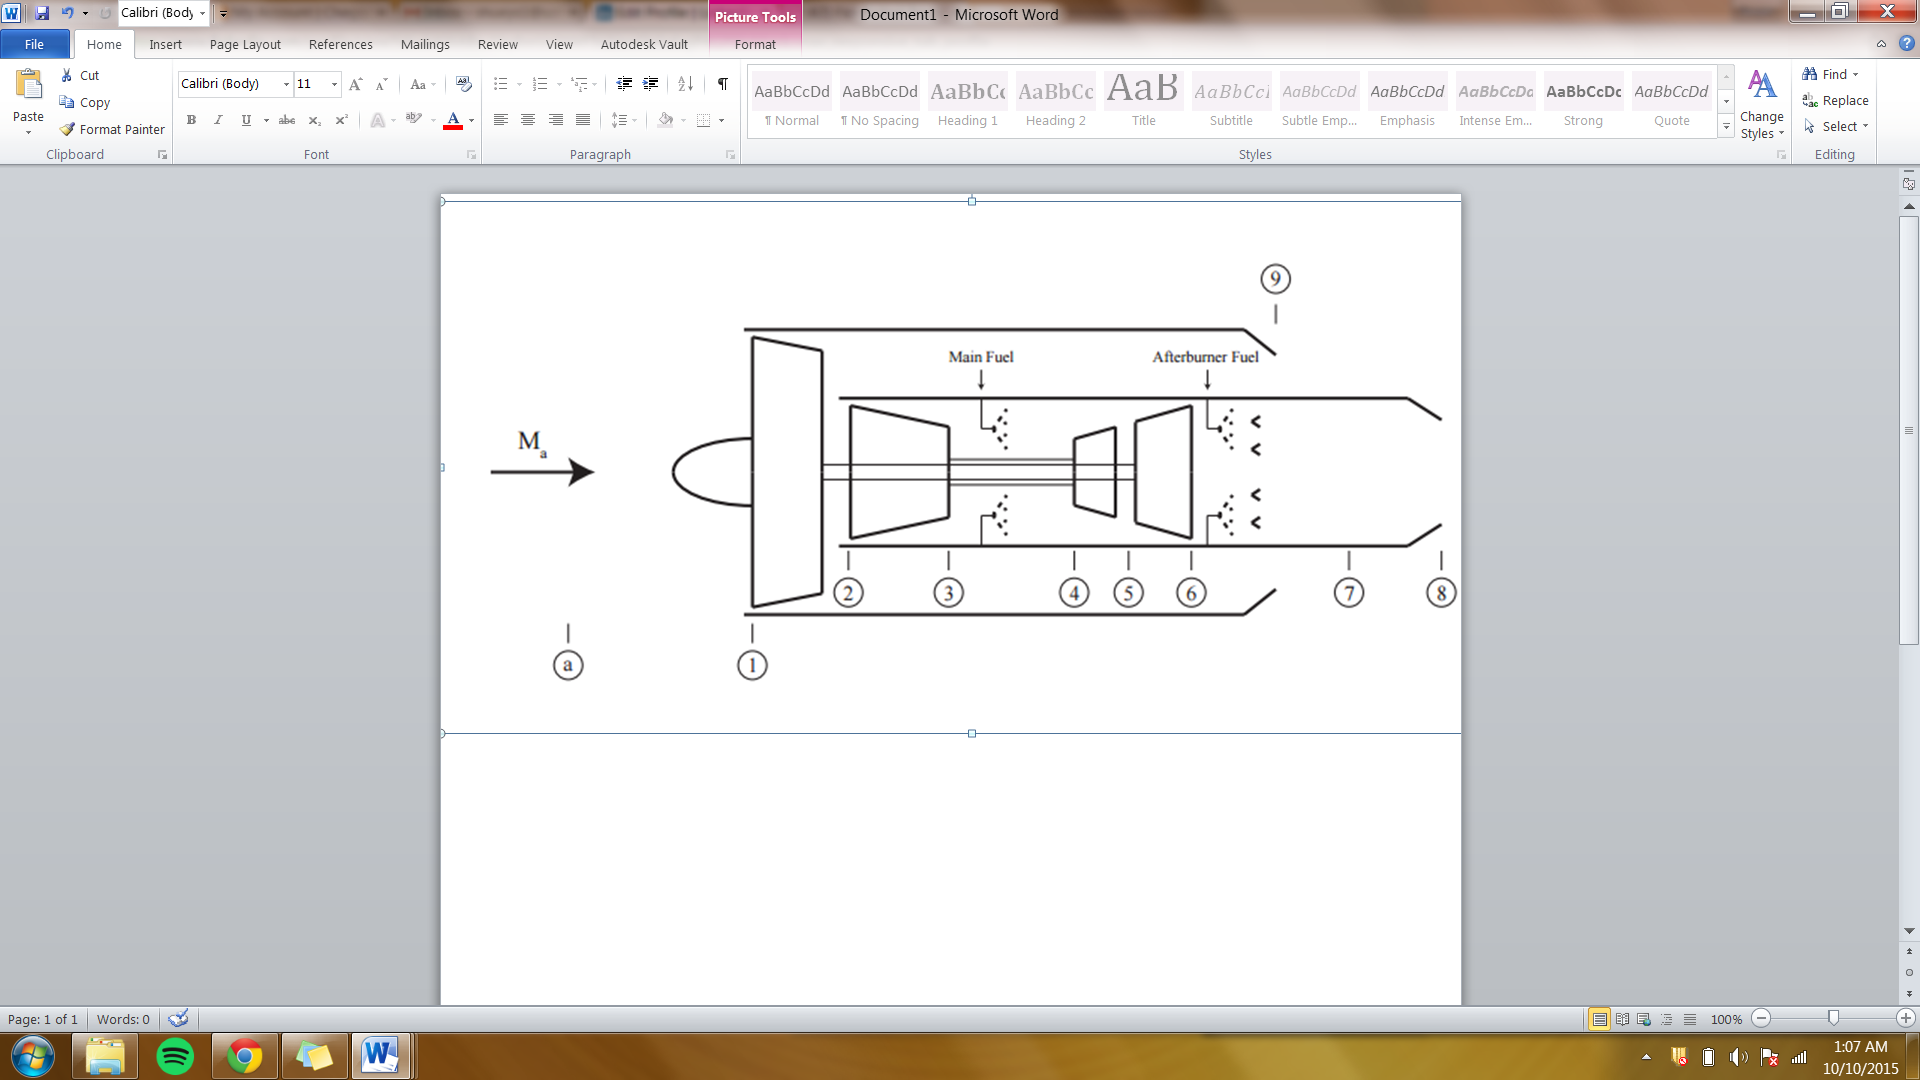 A Schematic Of A Twin-spool Turbofan Engine Is Giv... | Chegg.com on circuit diagram, engine specifications, engine timing diagram, engine configuration diagram, engine exploded view diagram, engine cover, aircraft piston engine diagram, engine timing chart, engine anatomy, engine block diagram, engine operation diagram, engine assembly drawing, engine repair diagram, engine wiring, engine fuse, engine design diagram, engine engine diagram, engine power, engine electrical diagram, engine dimensions,